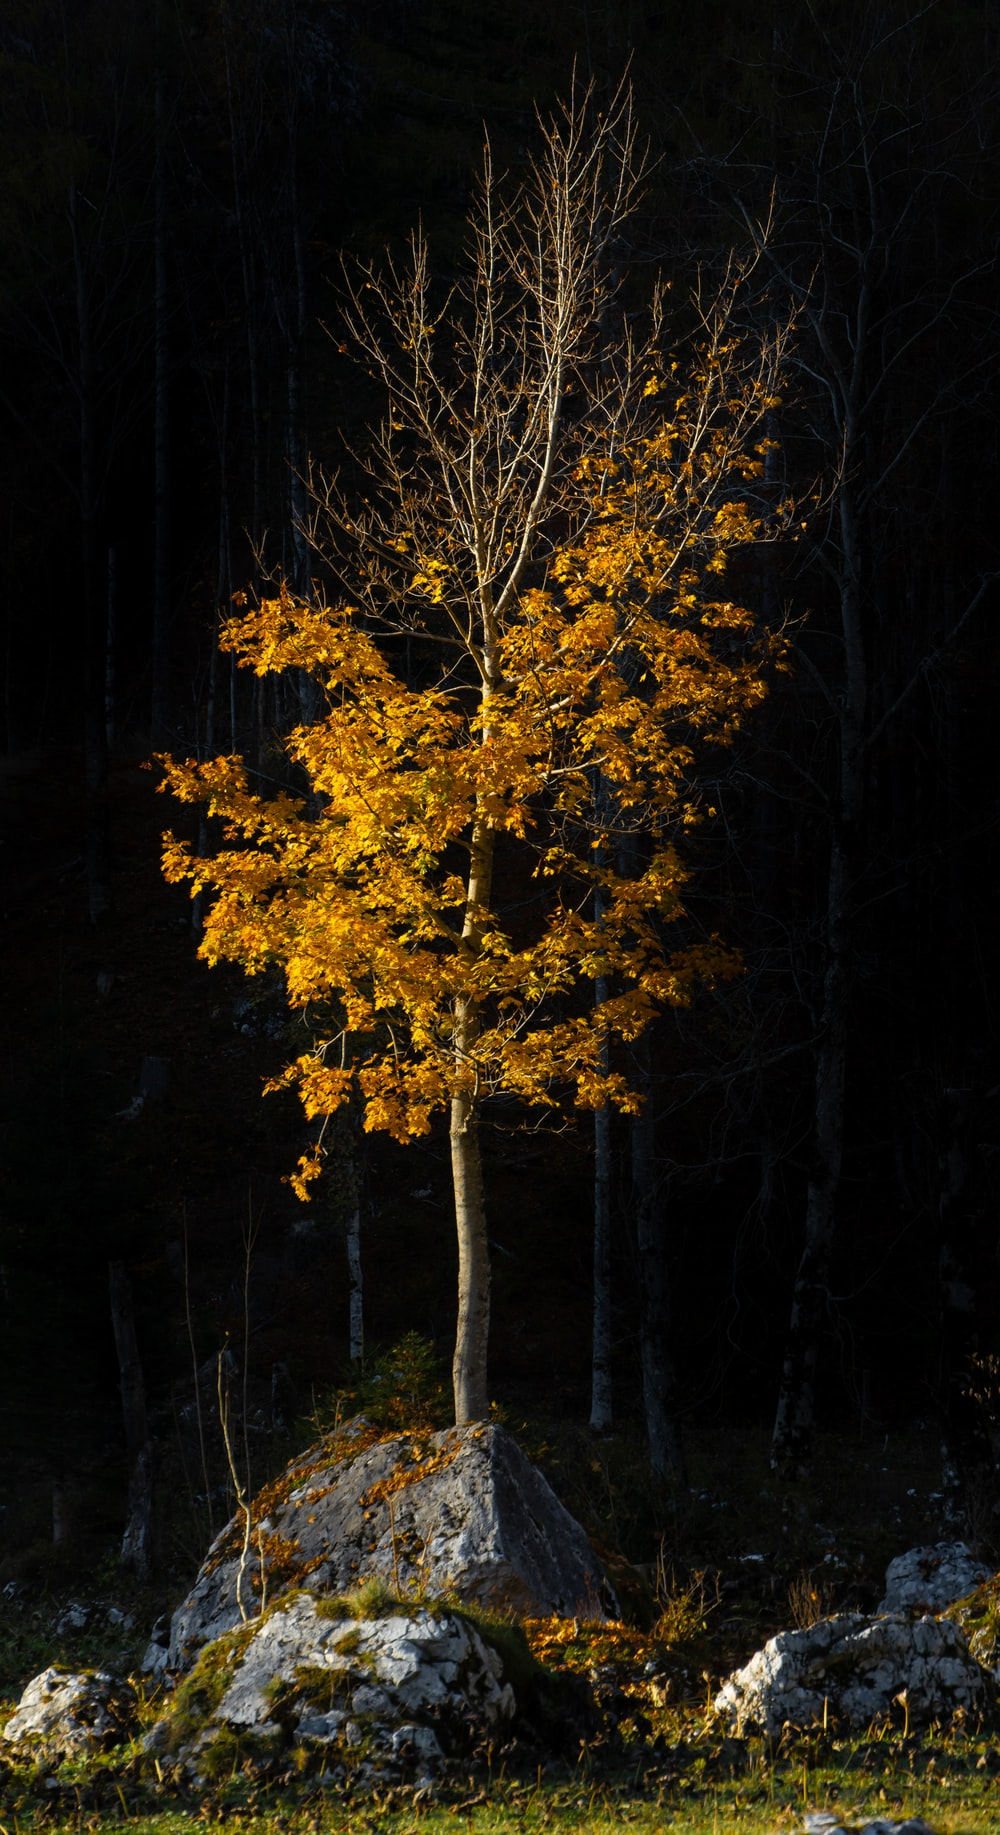 yellow leaf tree in forest during daytime